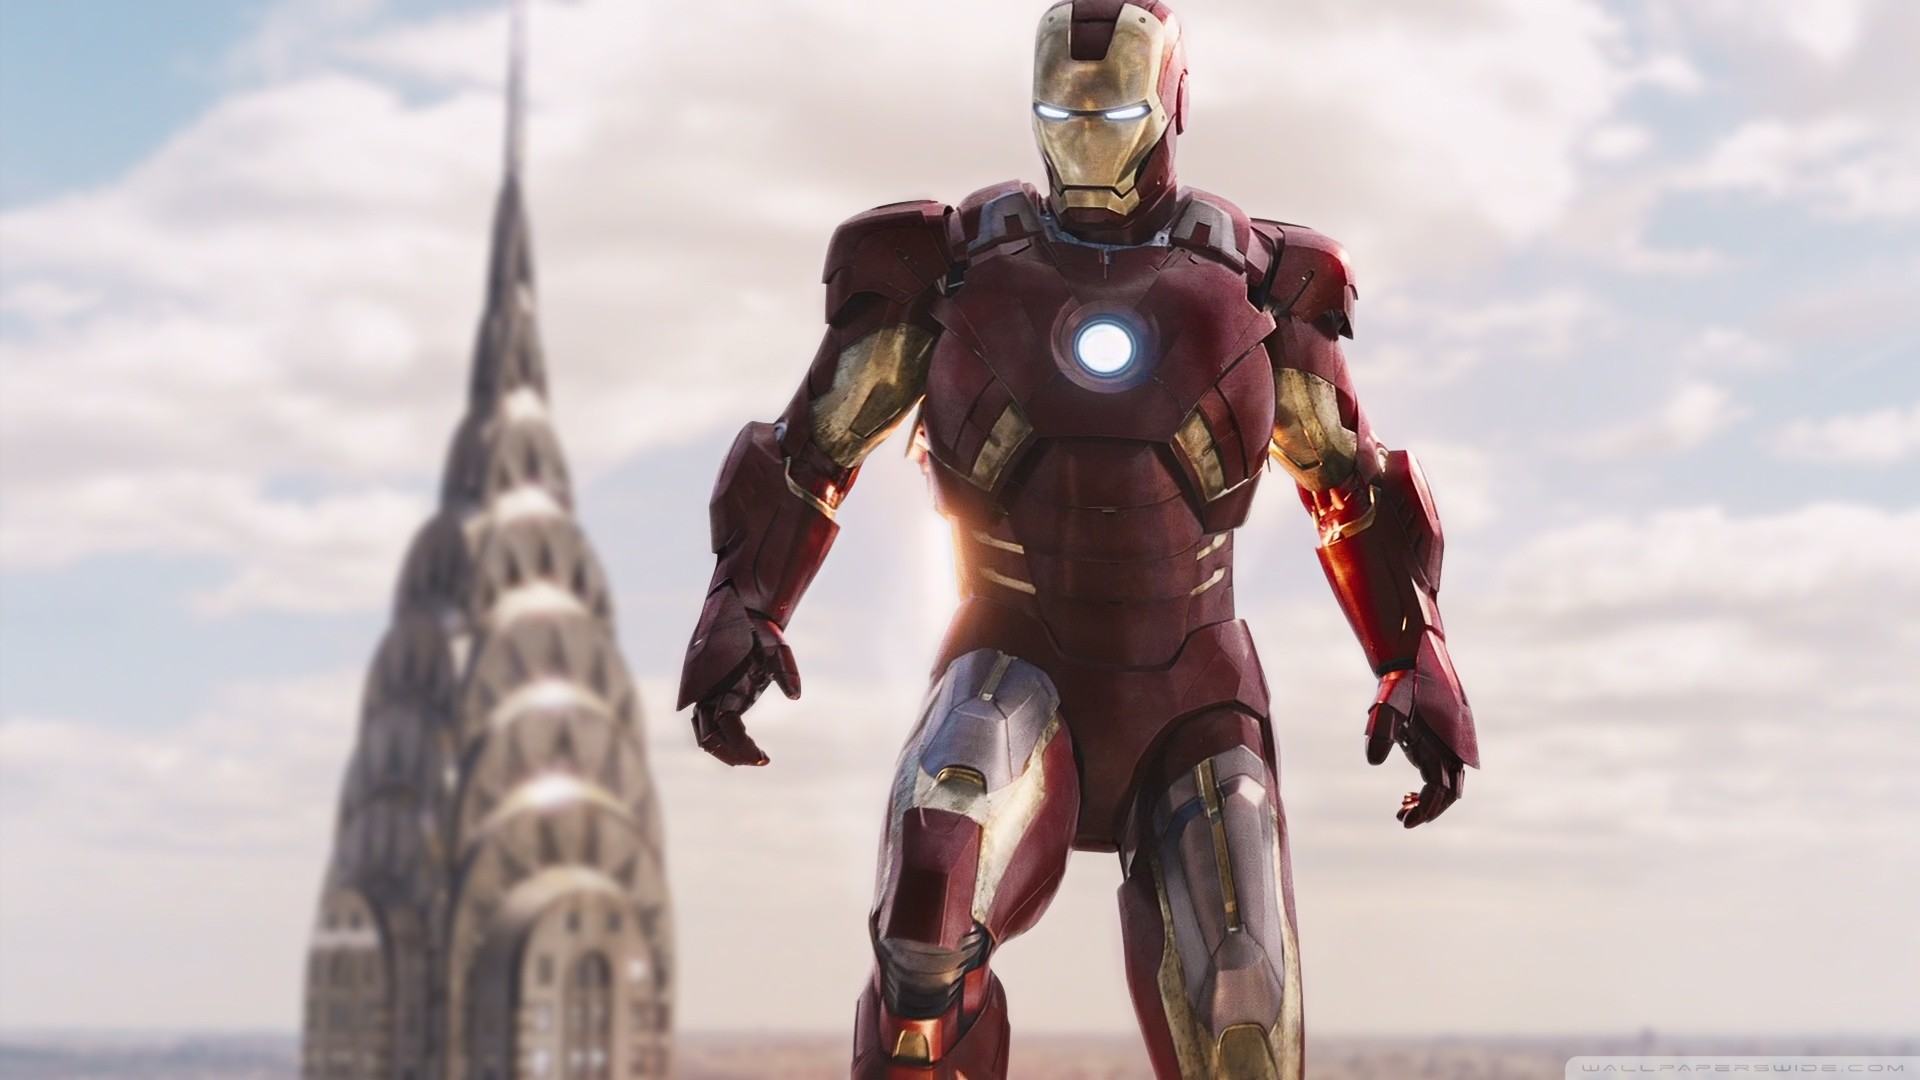 1920x1080 Ironman-MARK07-Avengers HD Wide Wallpaper for Widescreen